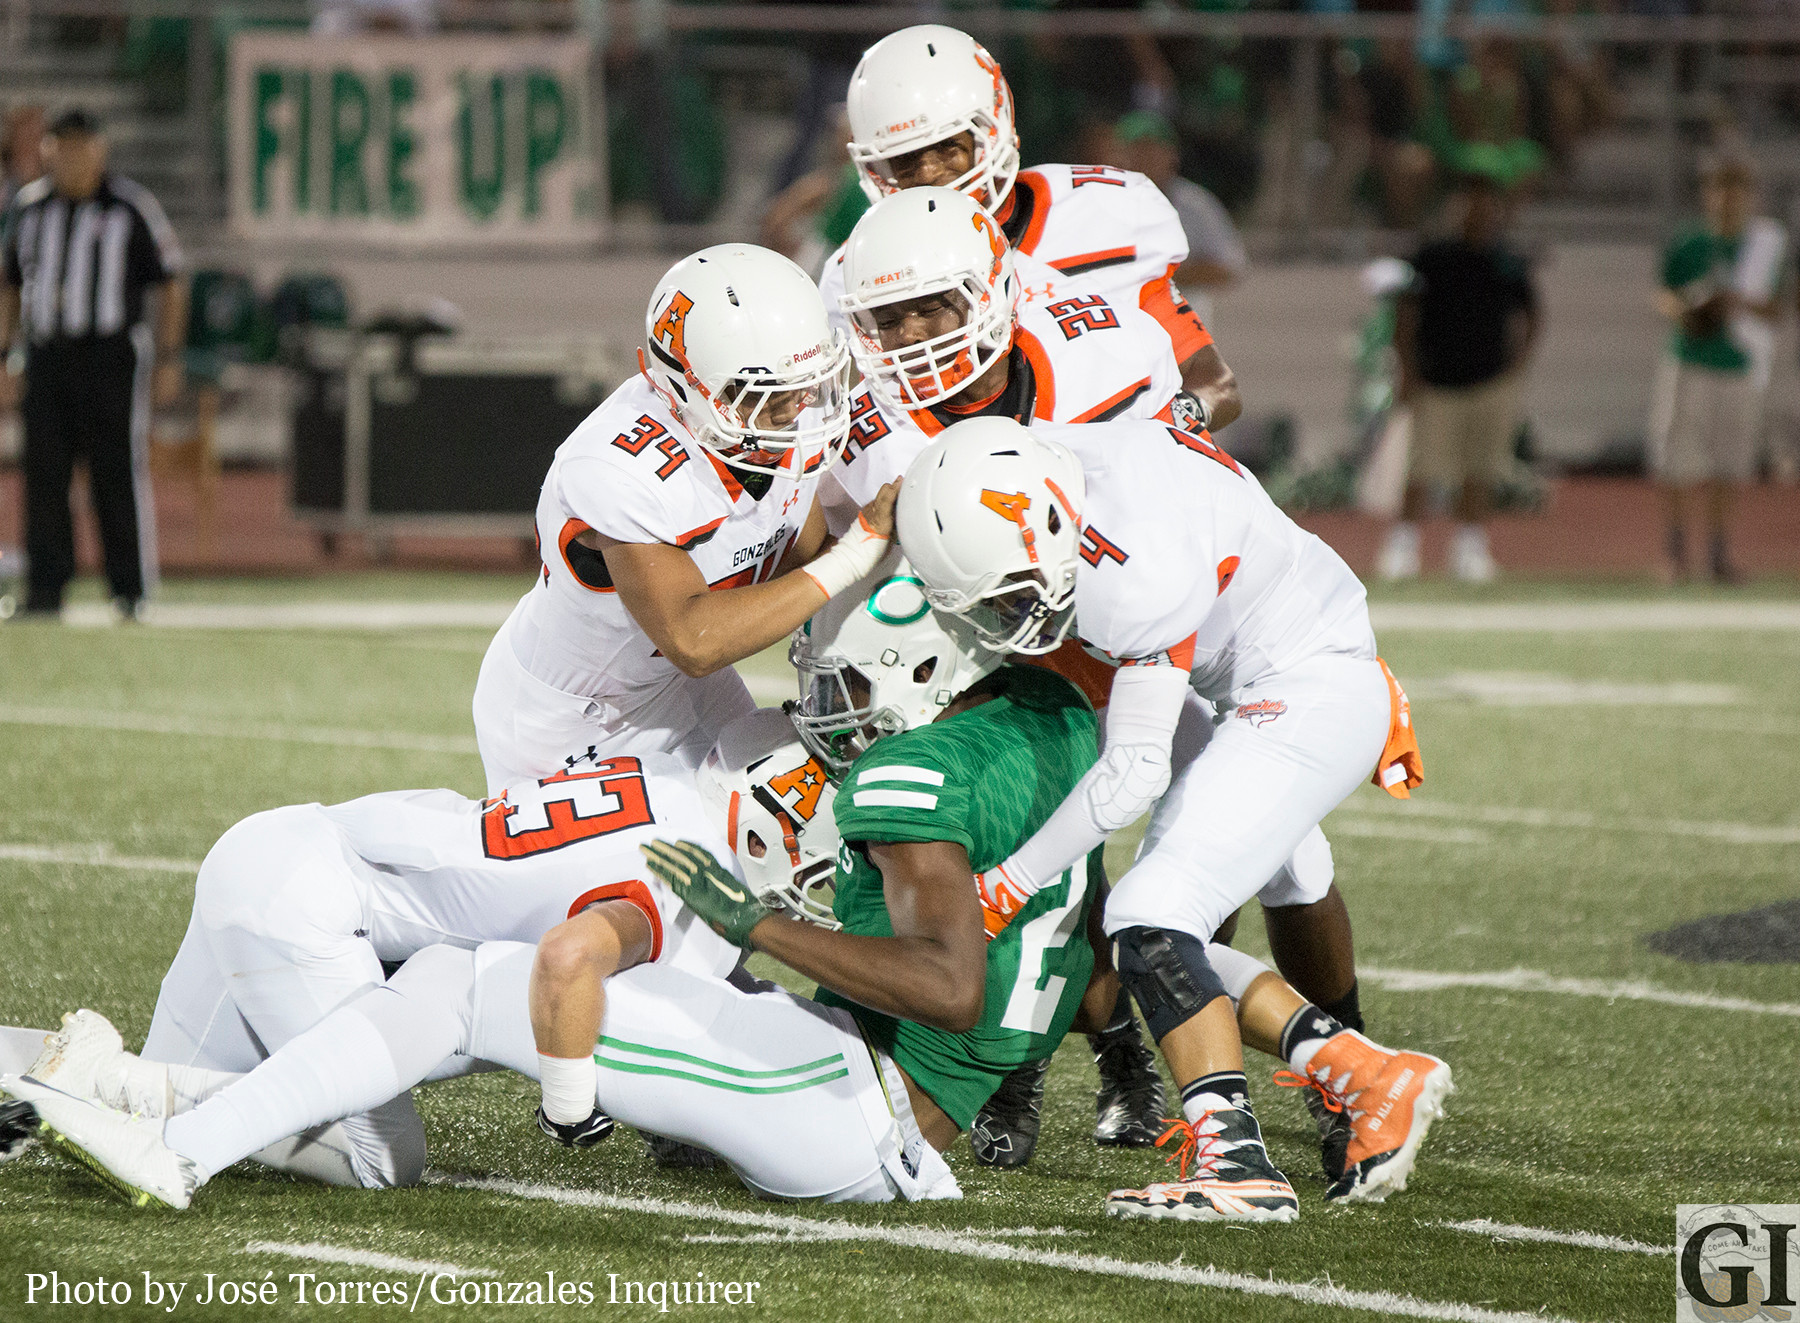 The Apaches defense swarmed Cuero runners in their 60-21 loss Friday night.